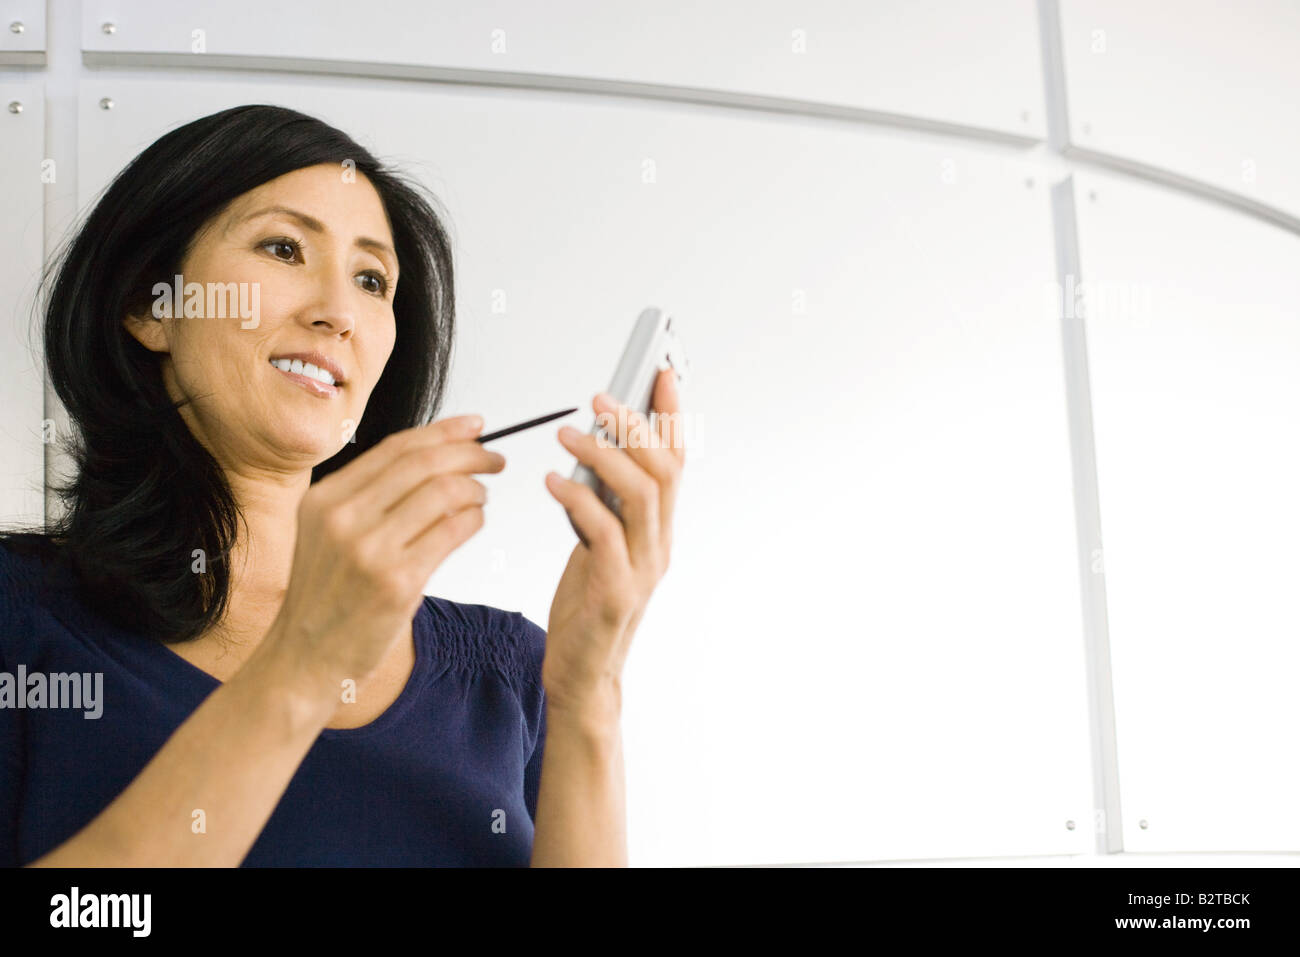 Woman using electronic organizer, smiling, low angle view - Stock Image